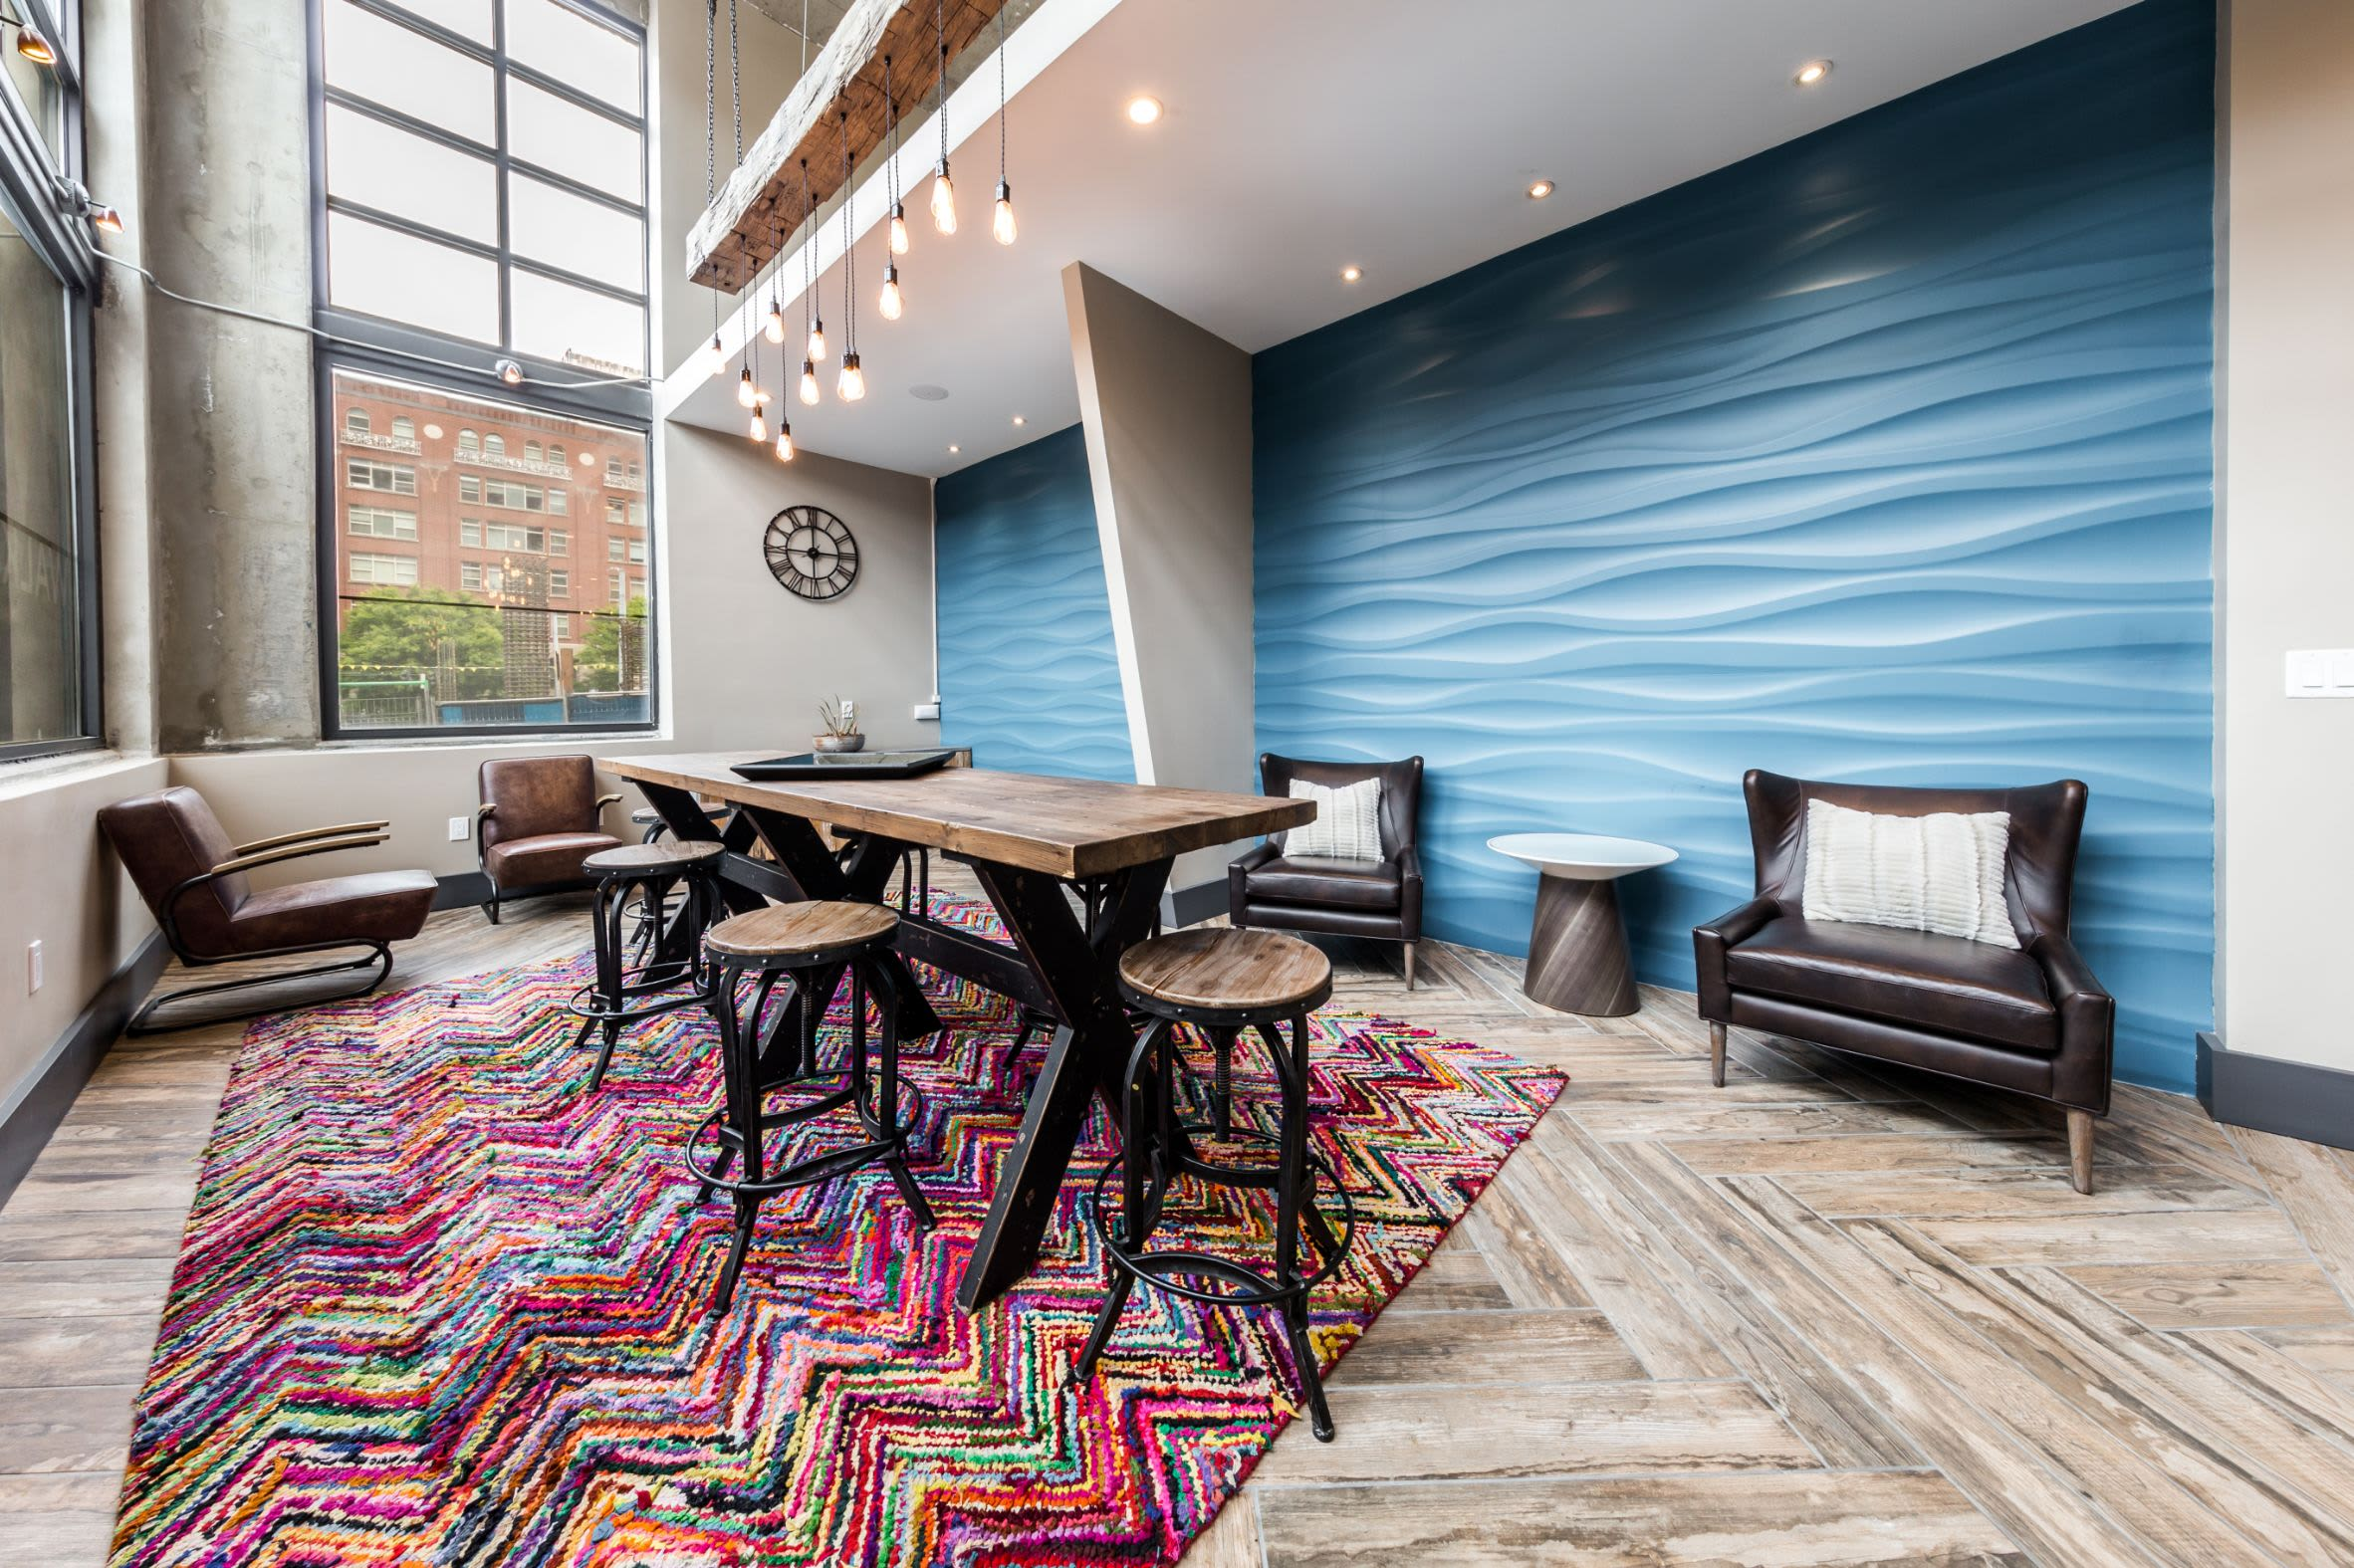 Table and chairs in lobby at Marq 211 in Seattle, Washington